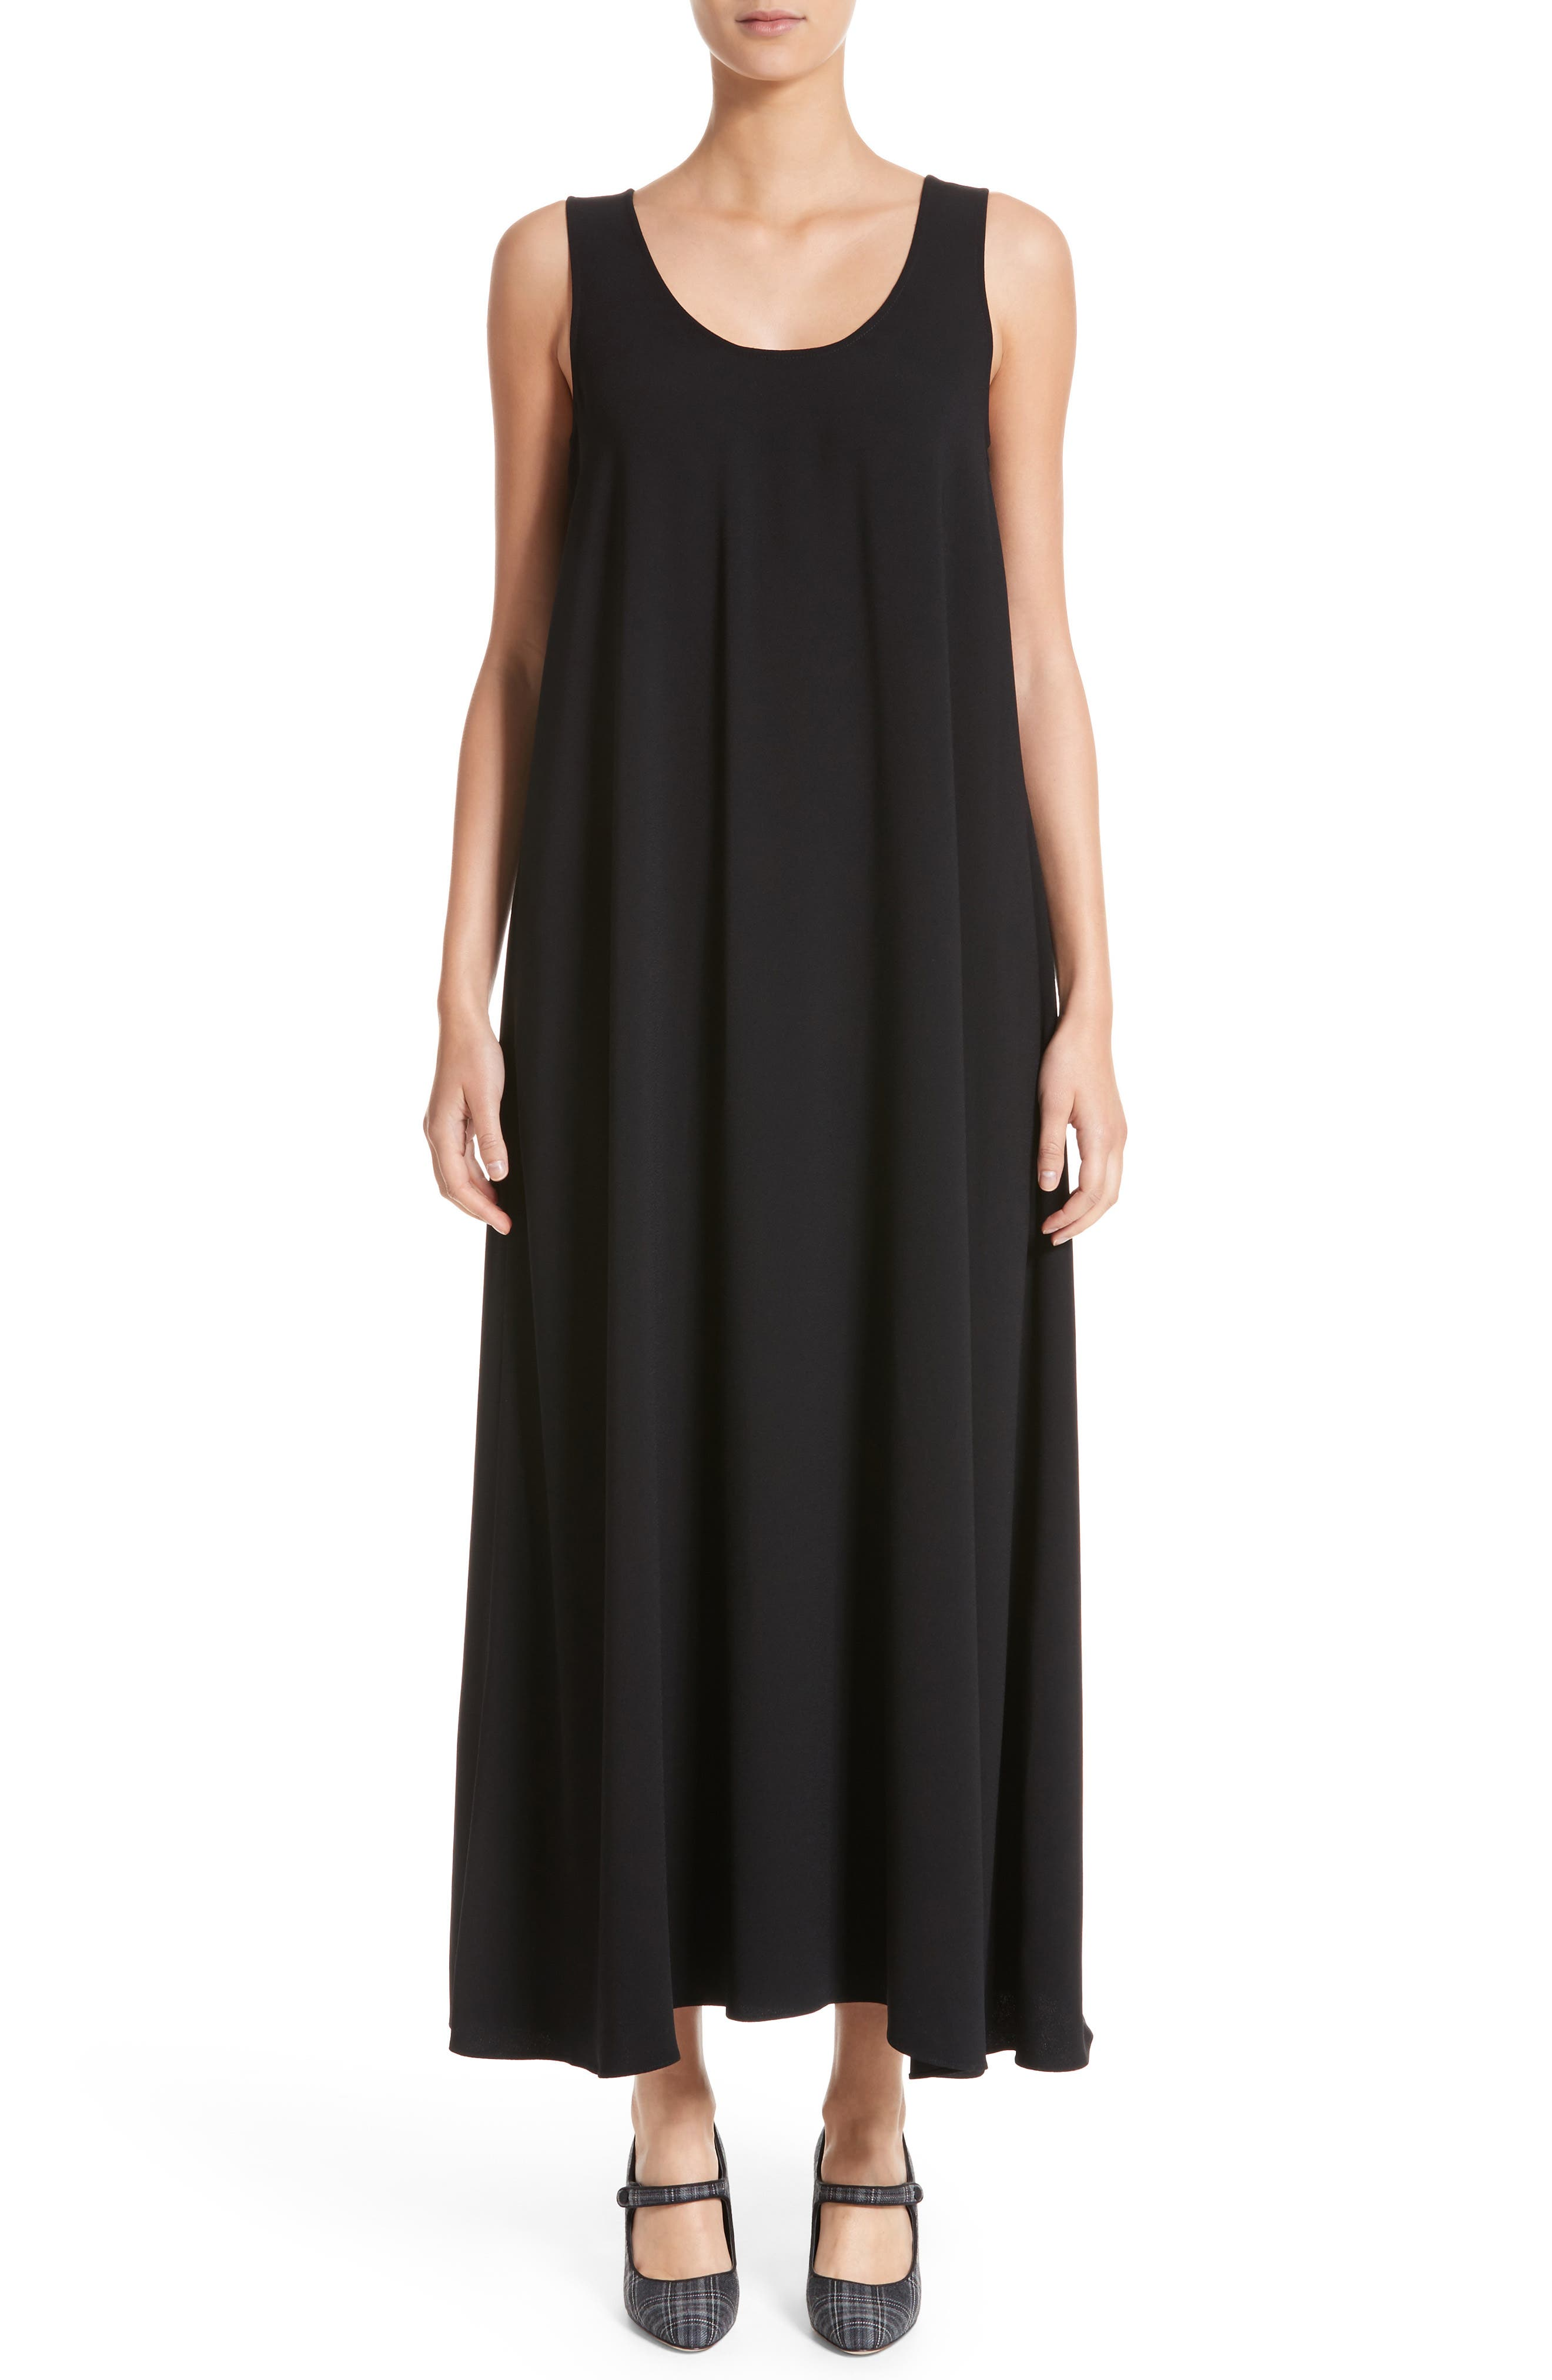 Co Sleeveless Maxi Dress